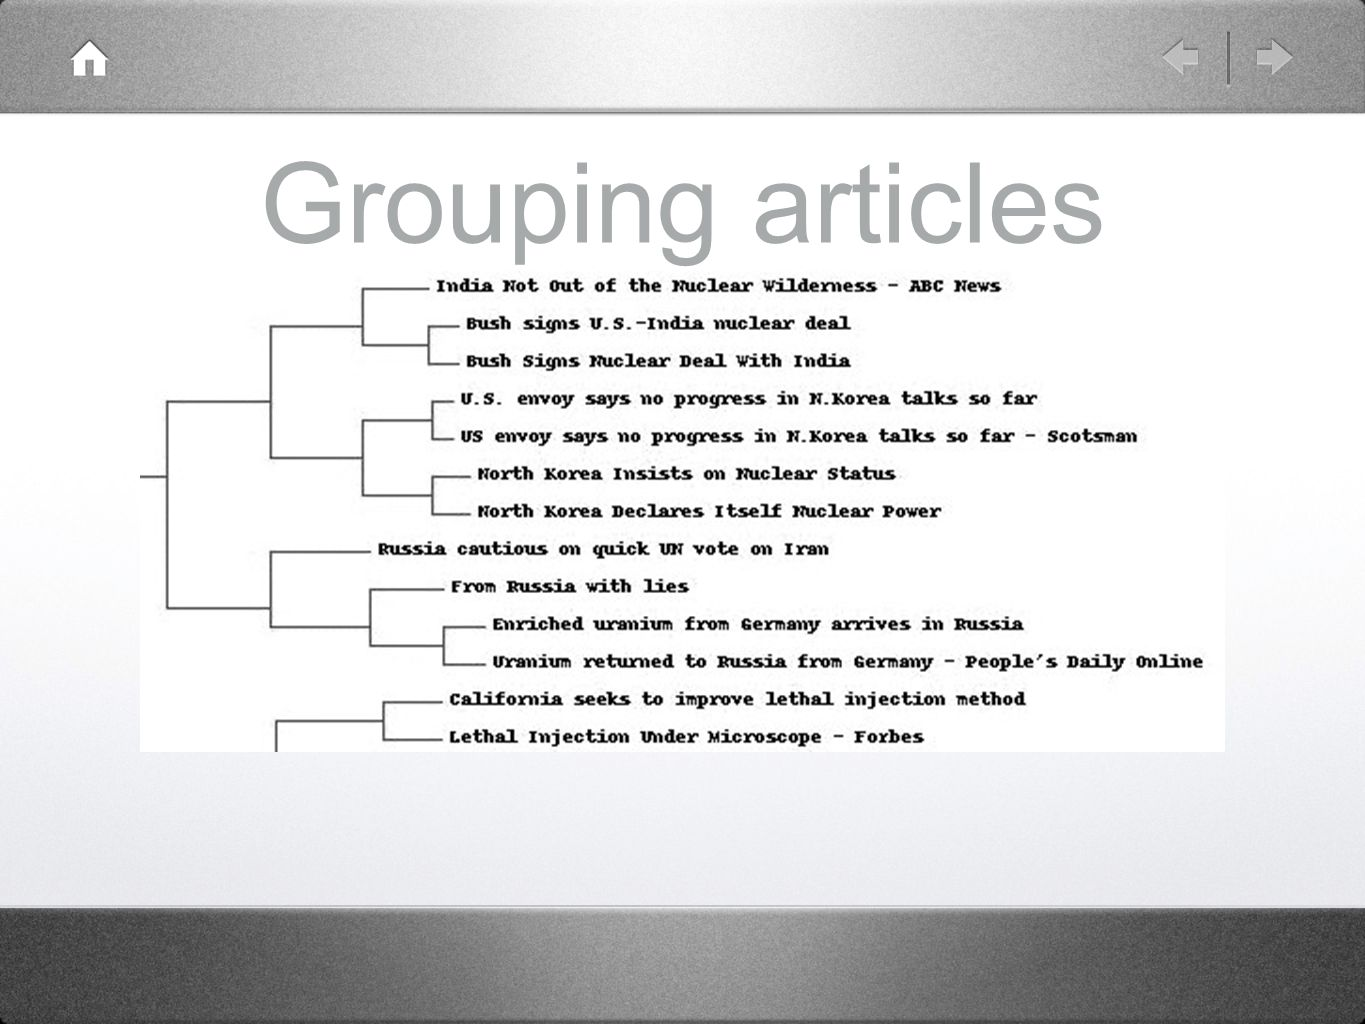 Grouping articles